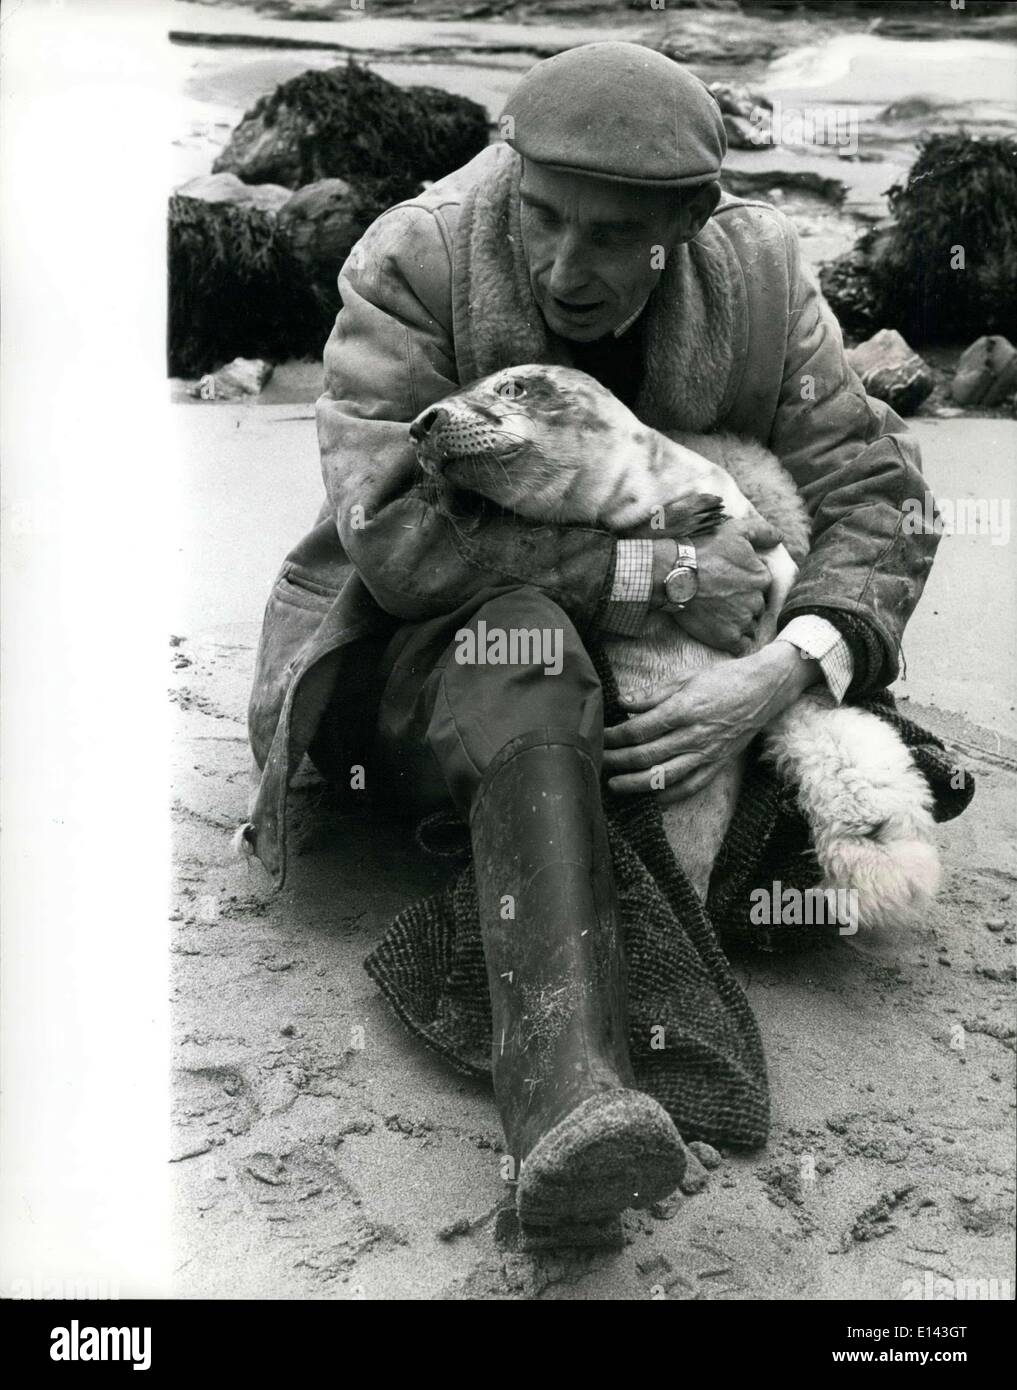 Mar. 31, 2012 - The man who saves the seas : instrumental in the fight to save the lives of hundred of Bab seals washed up on the coasts of Cornwall, is 42 year old welsh cafe proprietor ken Jones, of st. Agnes. ken first became interested in seals in 1961, when he resound a sick baby seel, receiving much publicity in the local press when another young seal was washed up, ken was asked to look after it - end in a short time it was healthy and released and when one of the seals recovered , but was found to have severe lung damage, ken decided there was only one thing for it - he dug a pond in - Stock Image